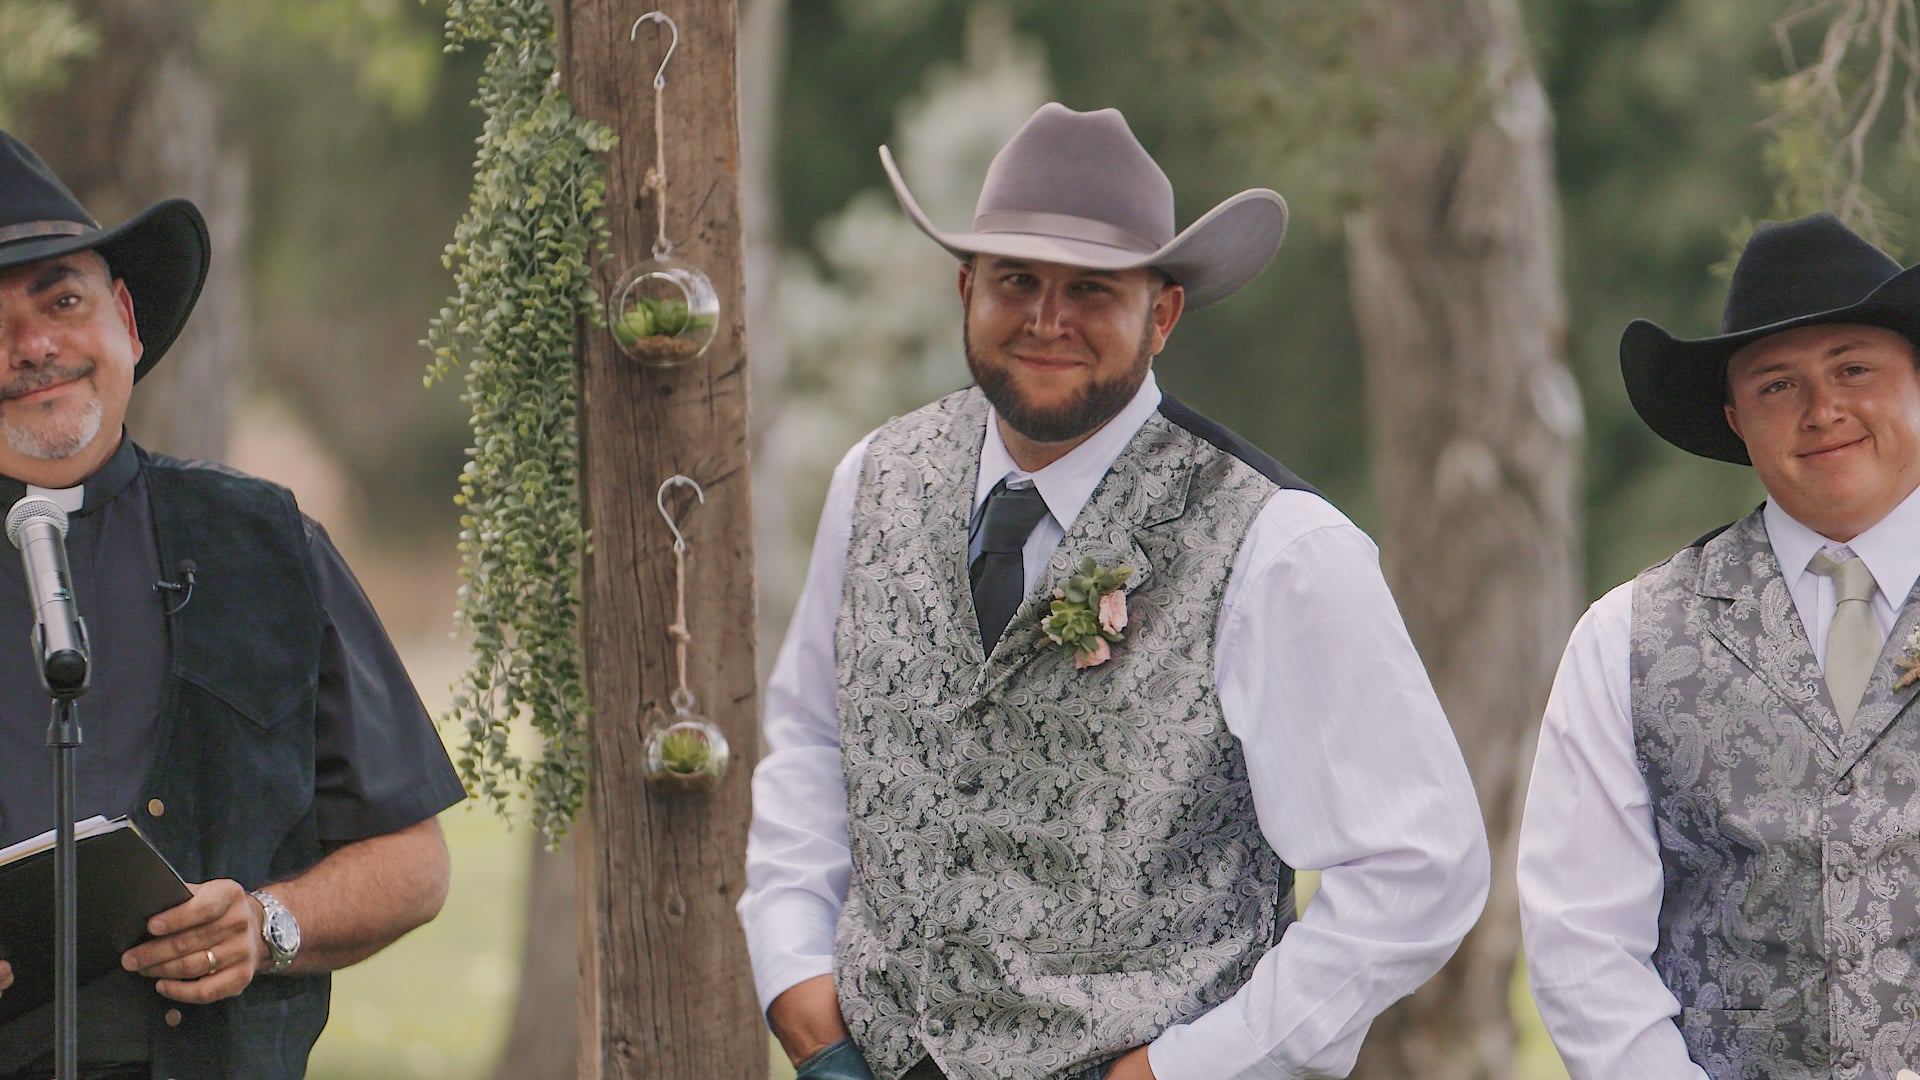 platte river fort wedding videographer